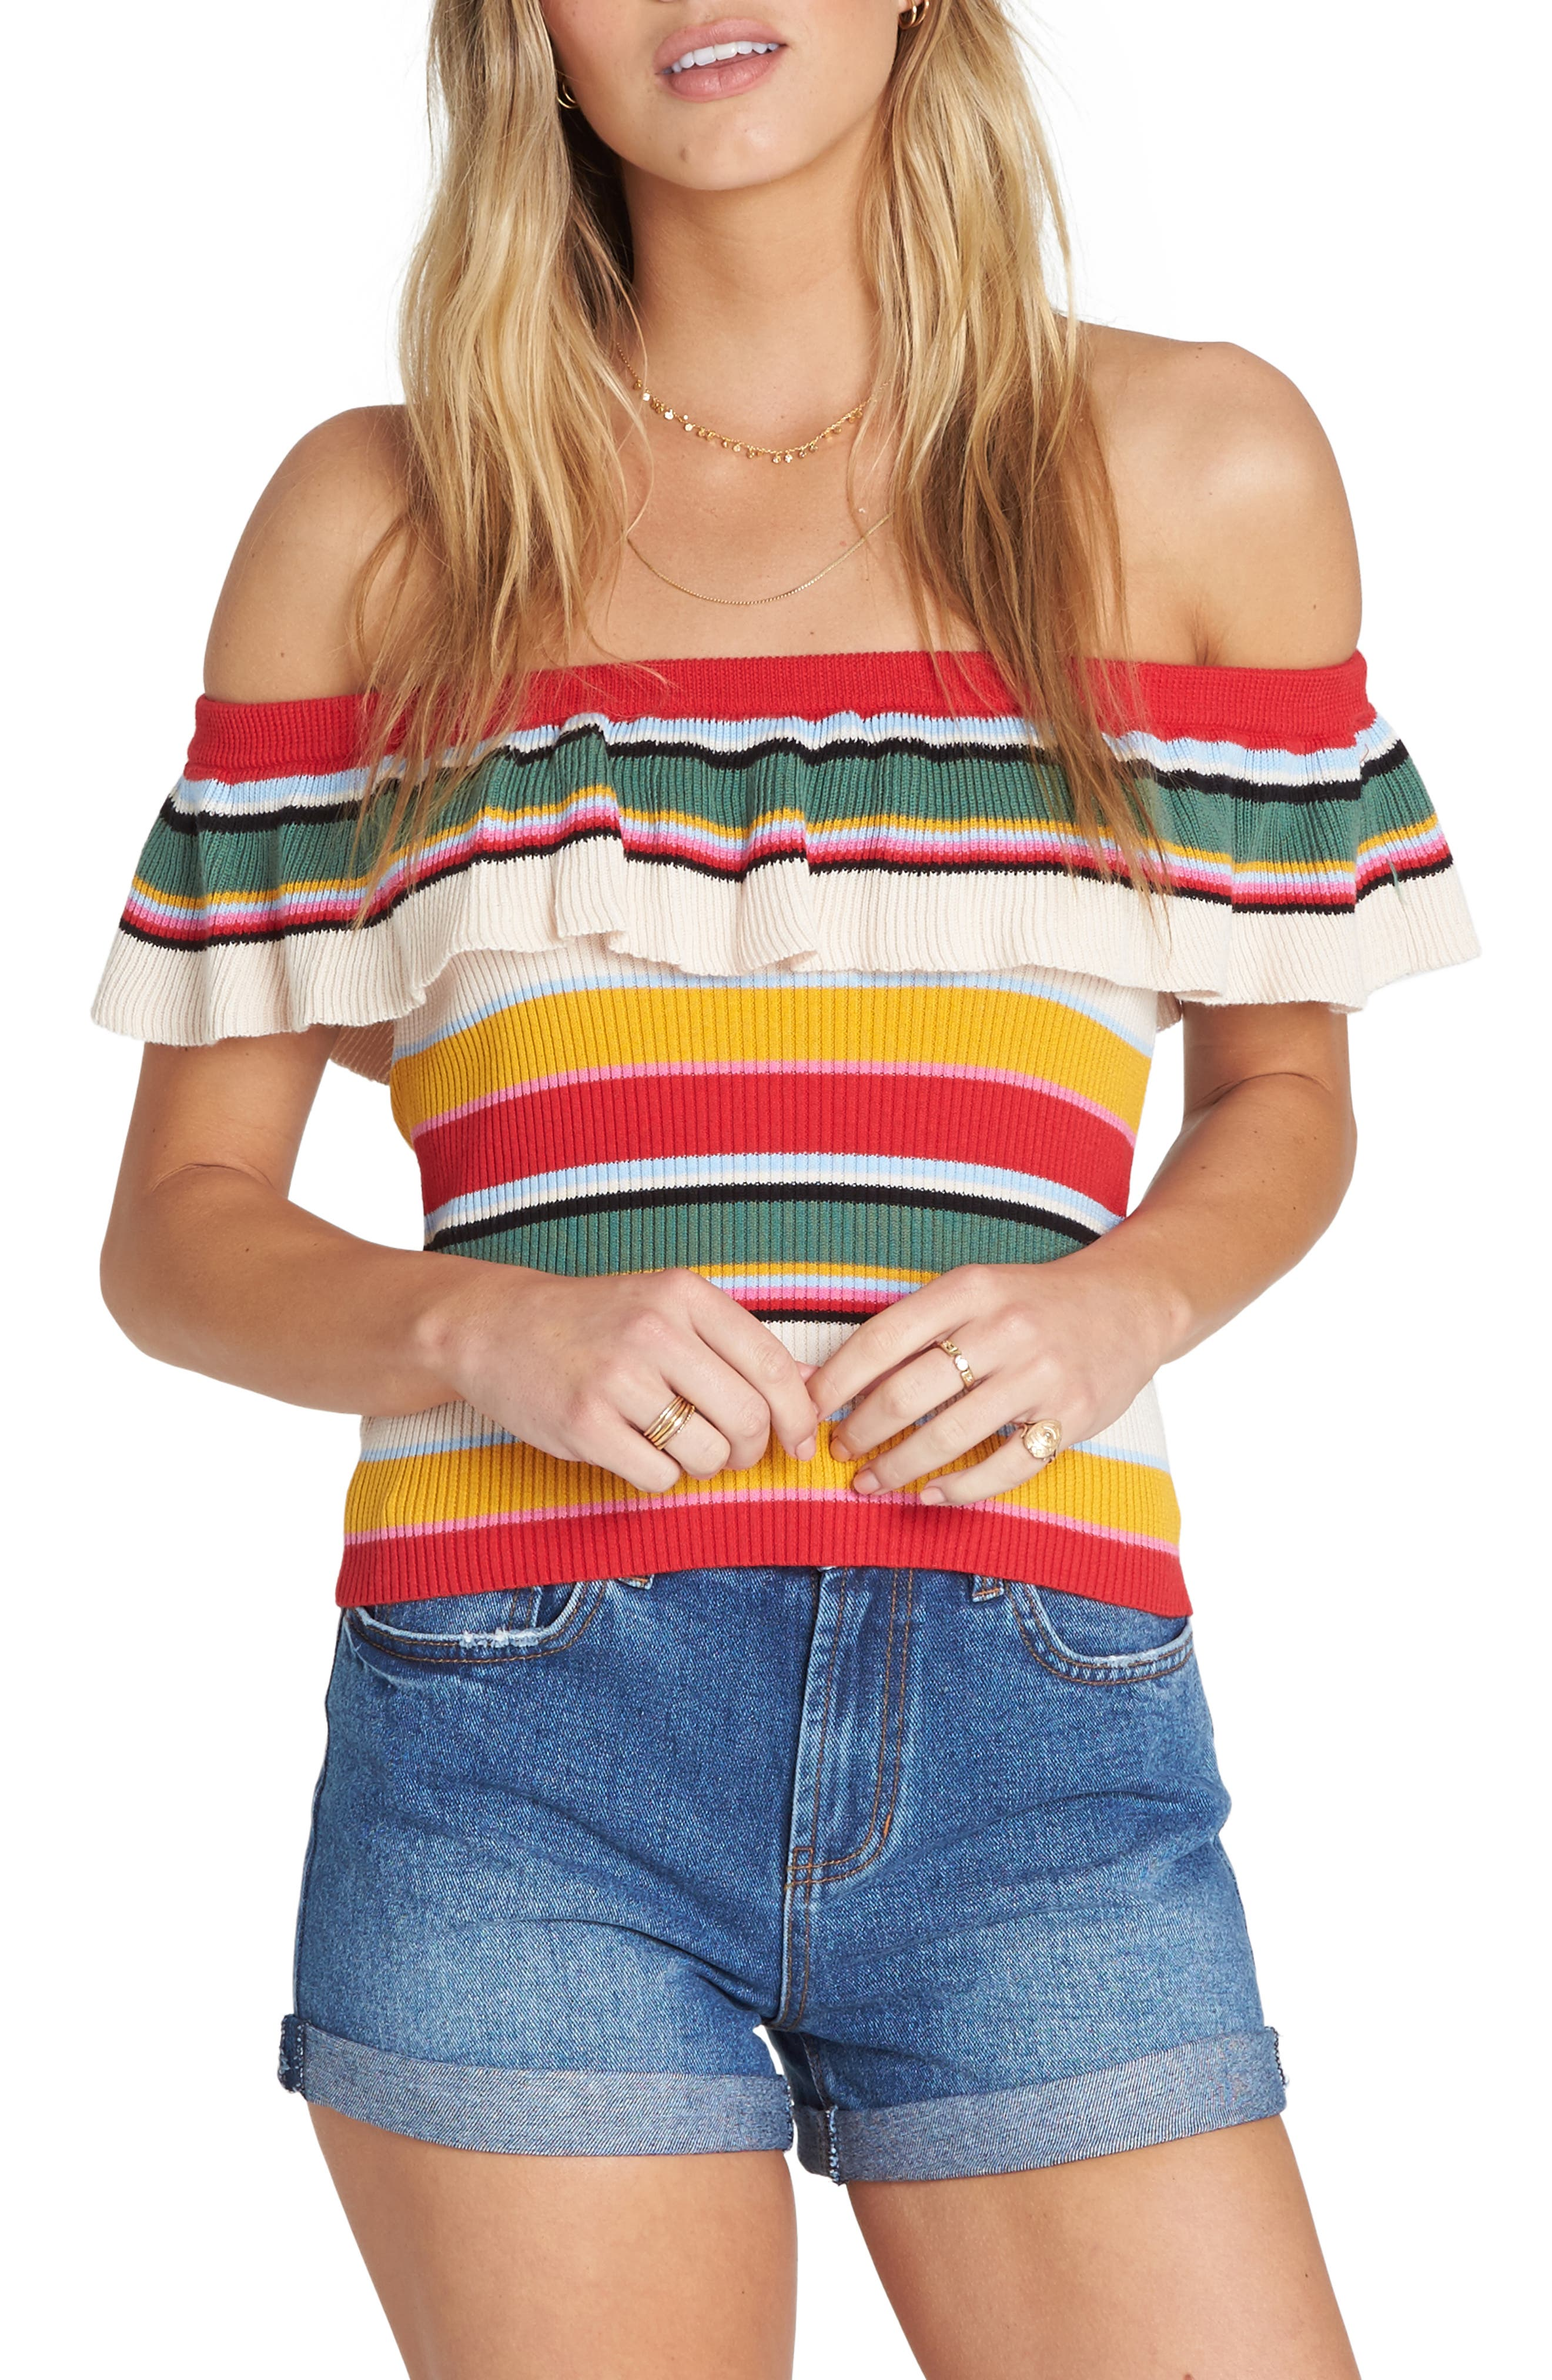 BILLABONG, Take a Trip Off the Shoulder Top, Main thumbnail 1, color, MULTI